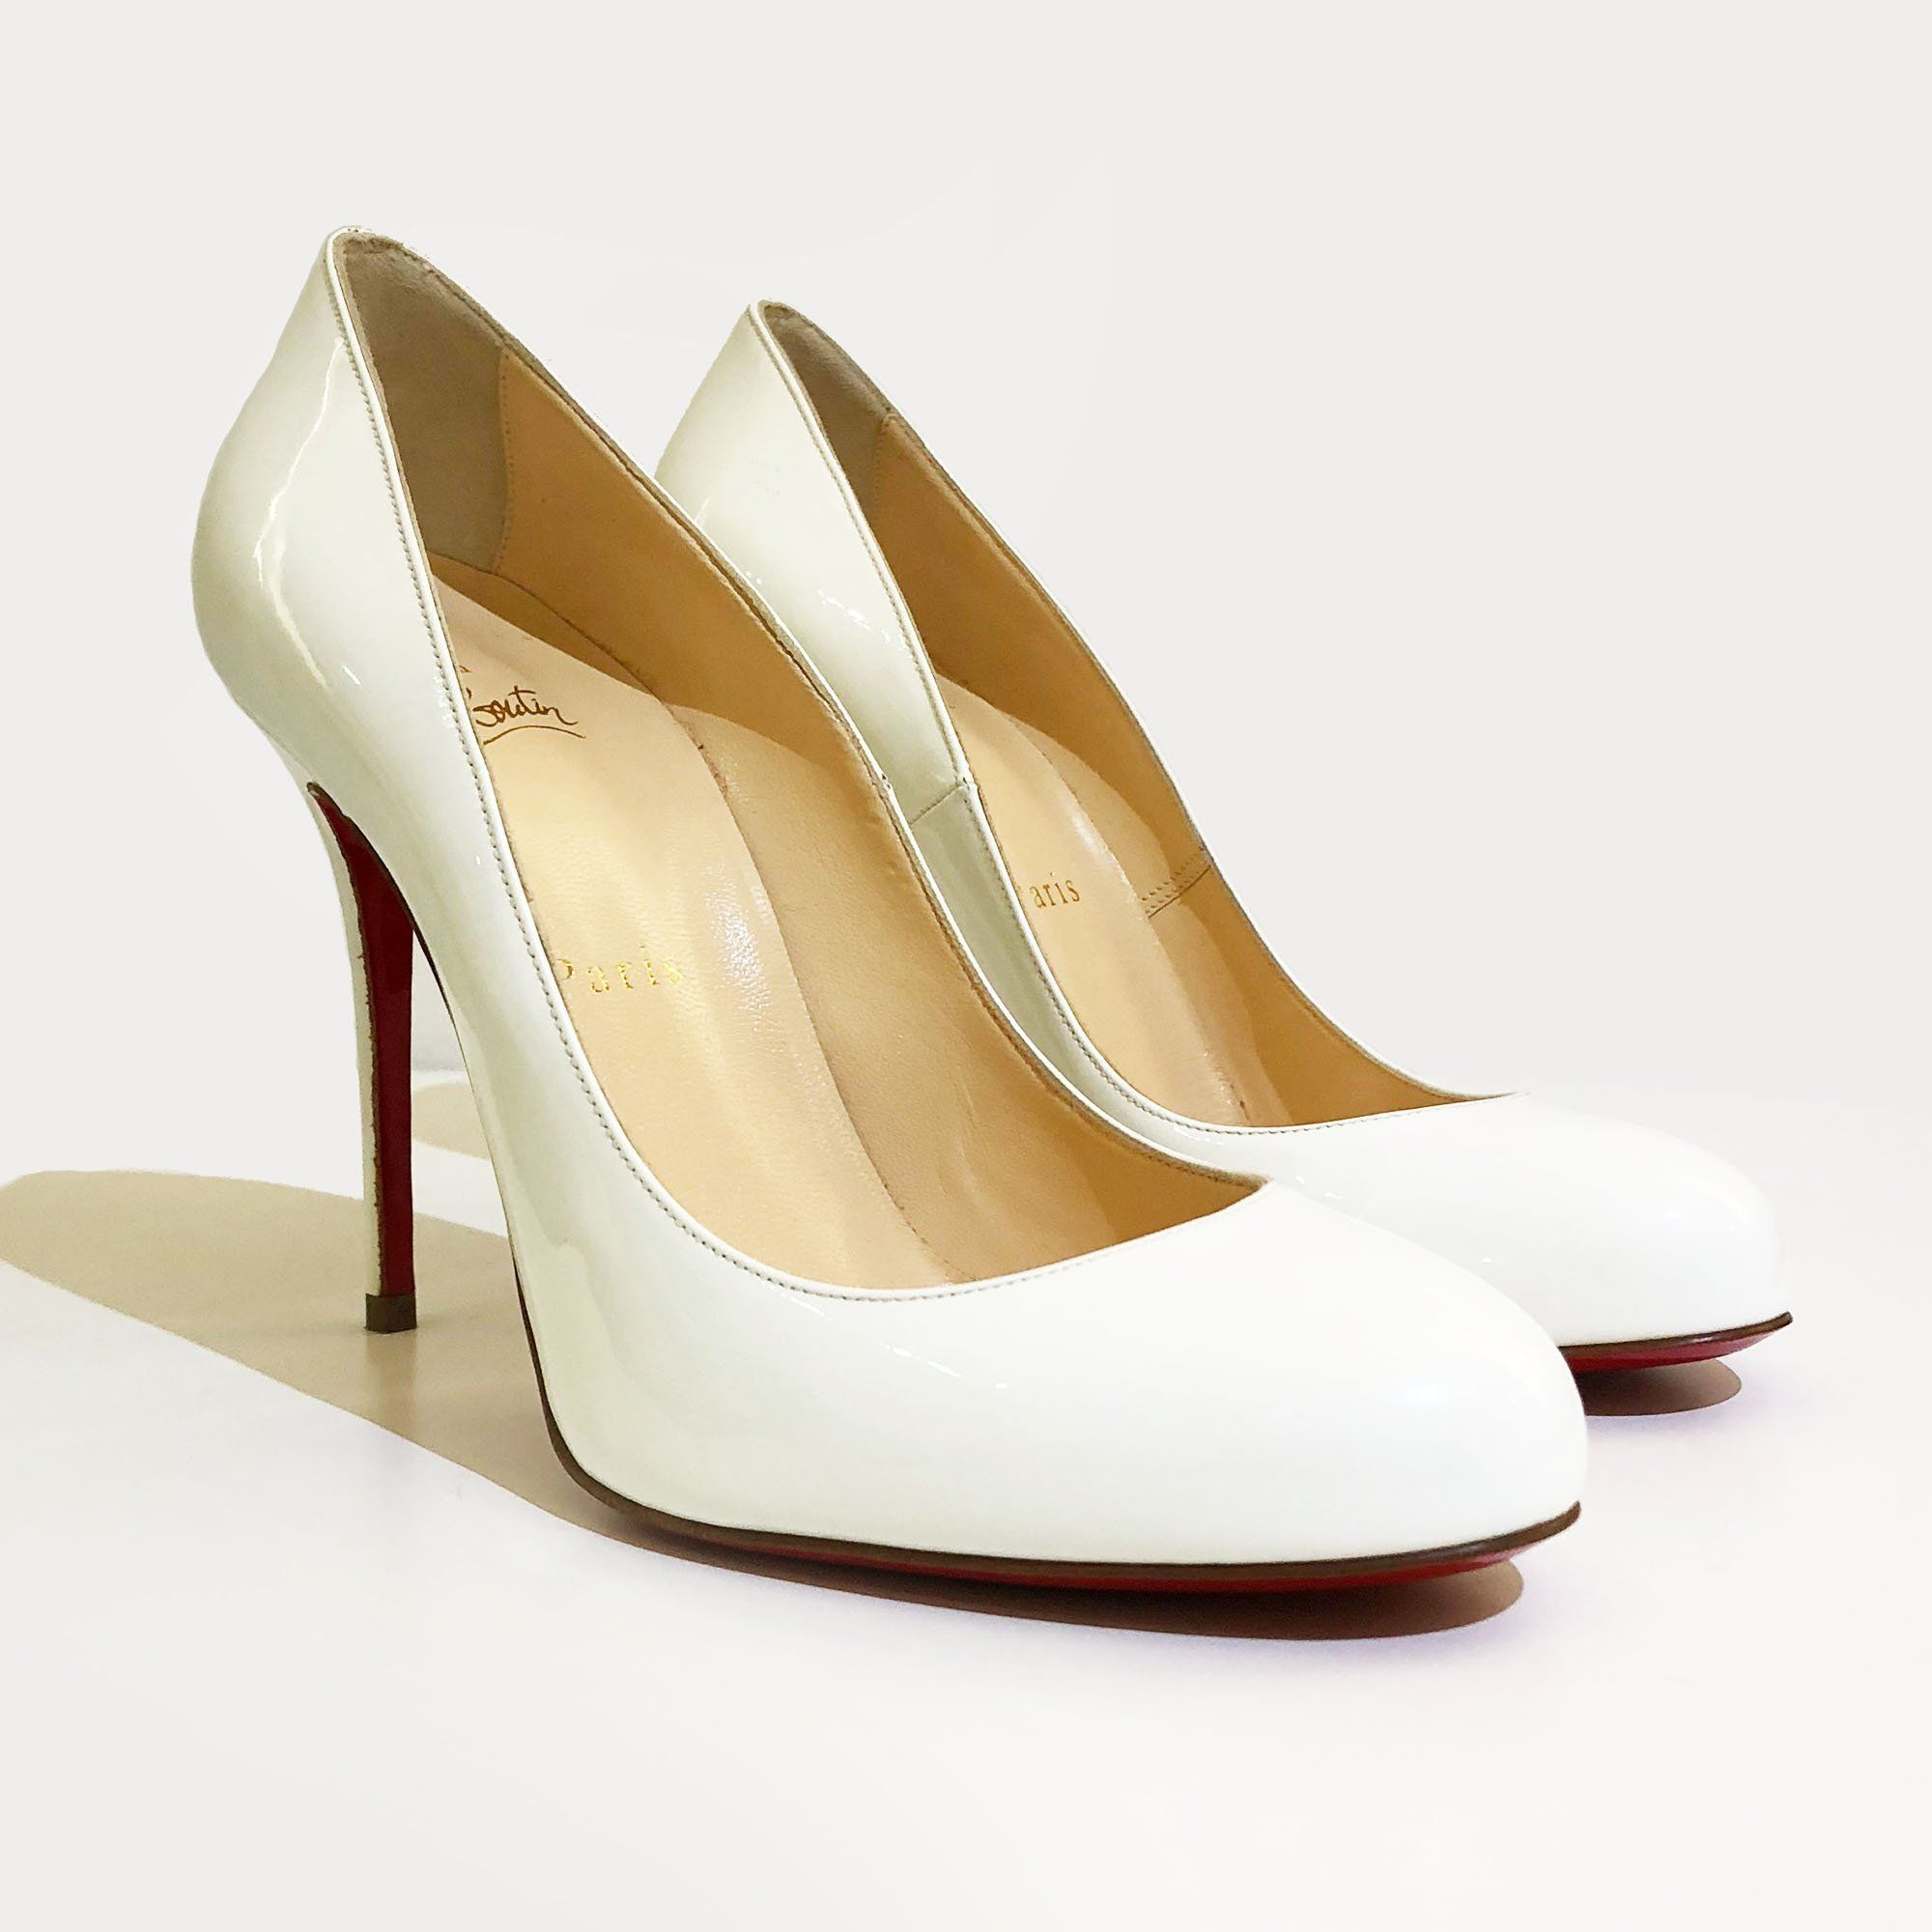 Christian Louboutin White Patent Leather Pumps